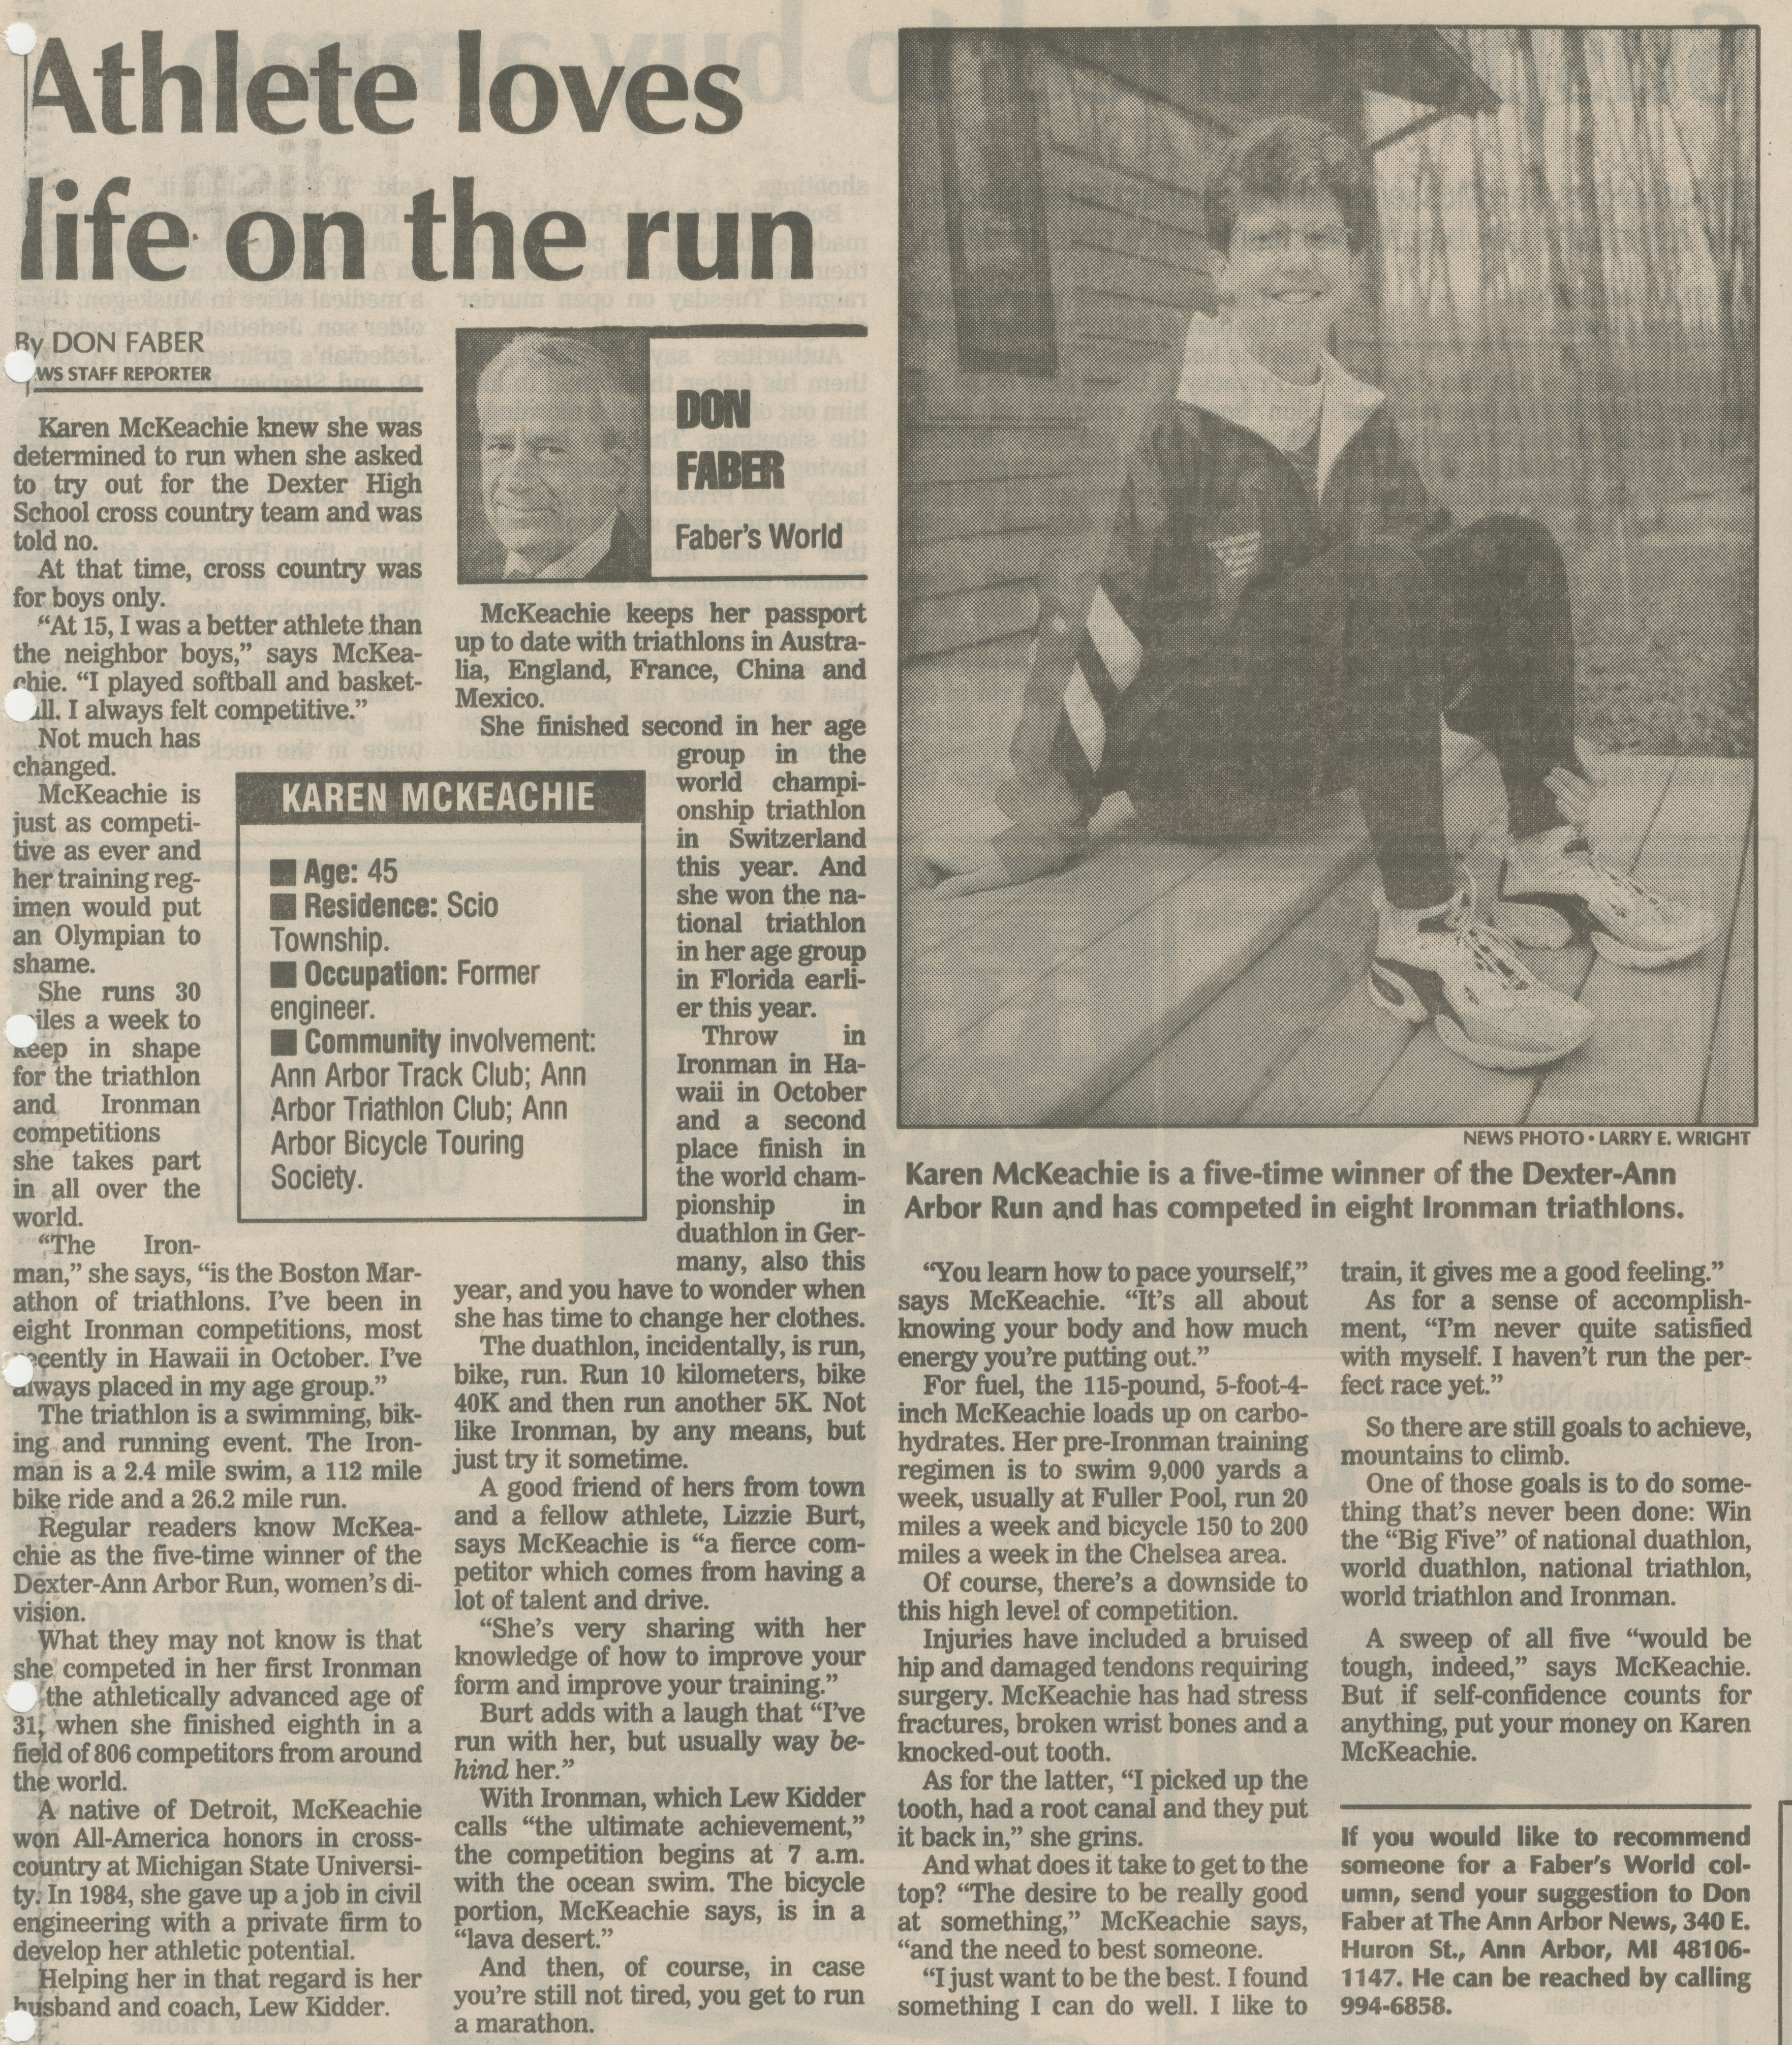 Athlete Loves Life On The Run image